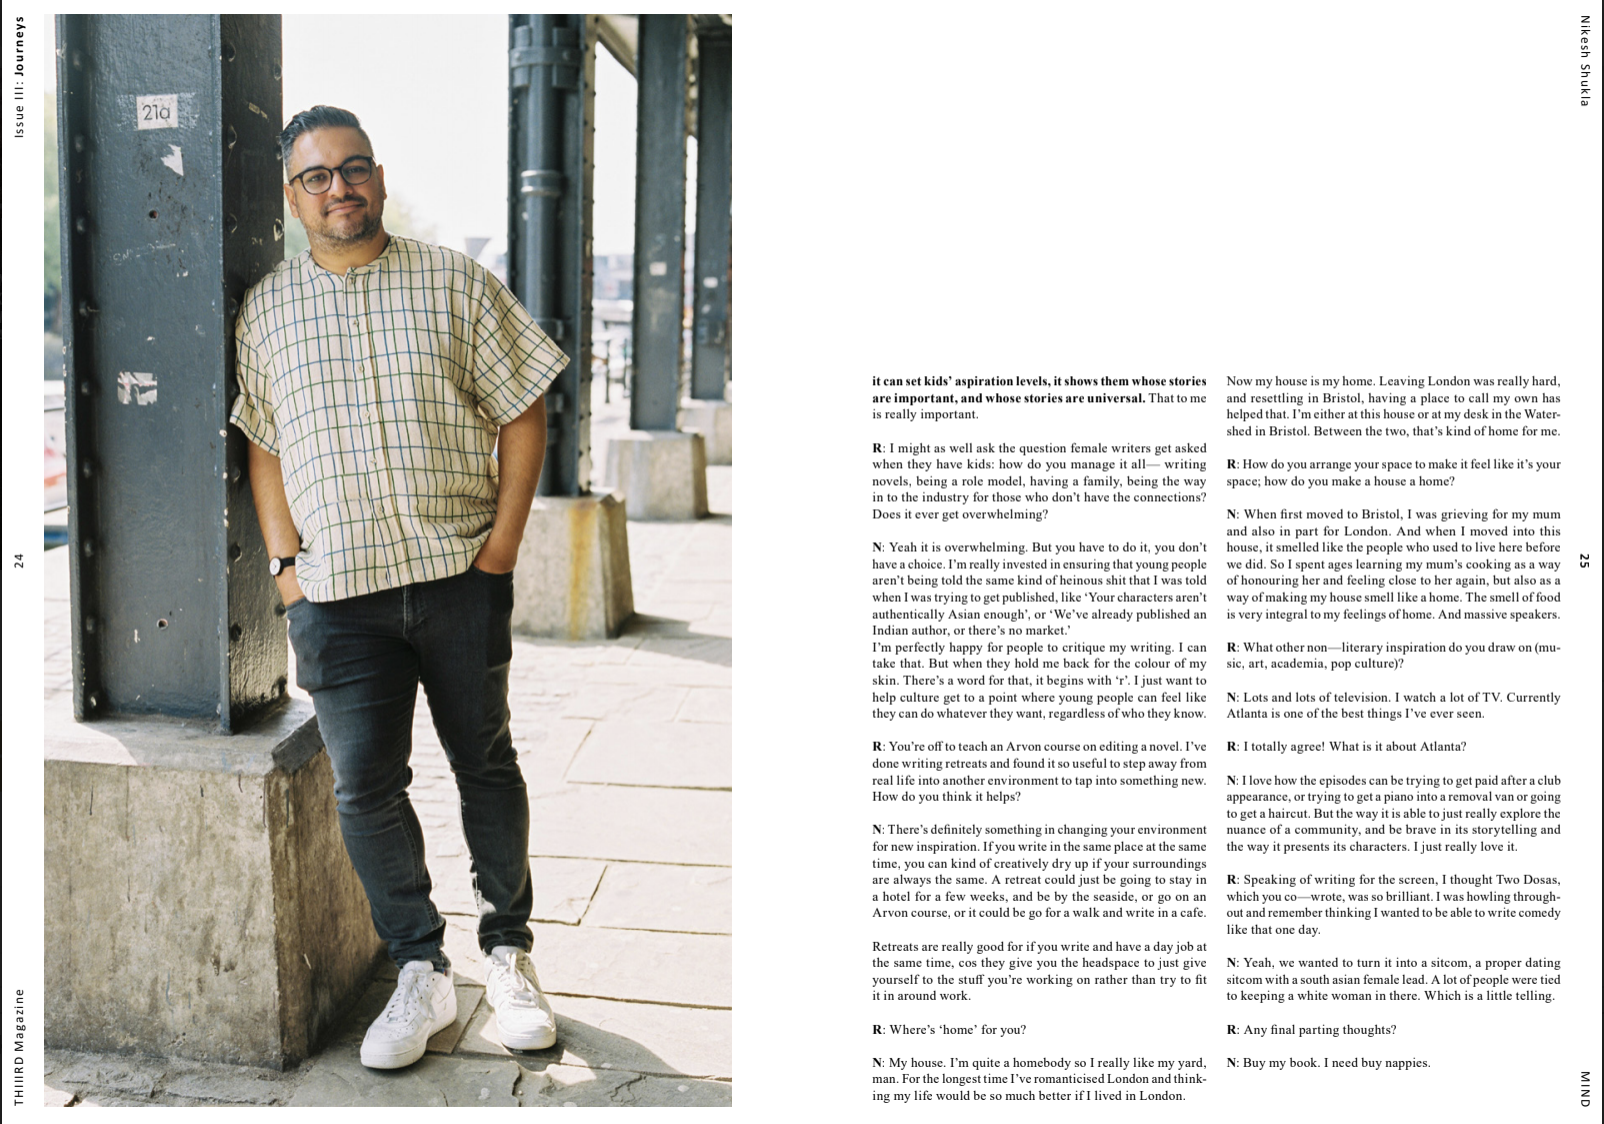 THIIIRD  Magazine  THIIIRD's latest issue is all about JOURNEYS and features our co-founder Roshni interviewing the author (and one of her literary heroes) Nikesh Shukla, where they talk the importance of telling our stories and being an undercover creative as the child of immigrants.